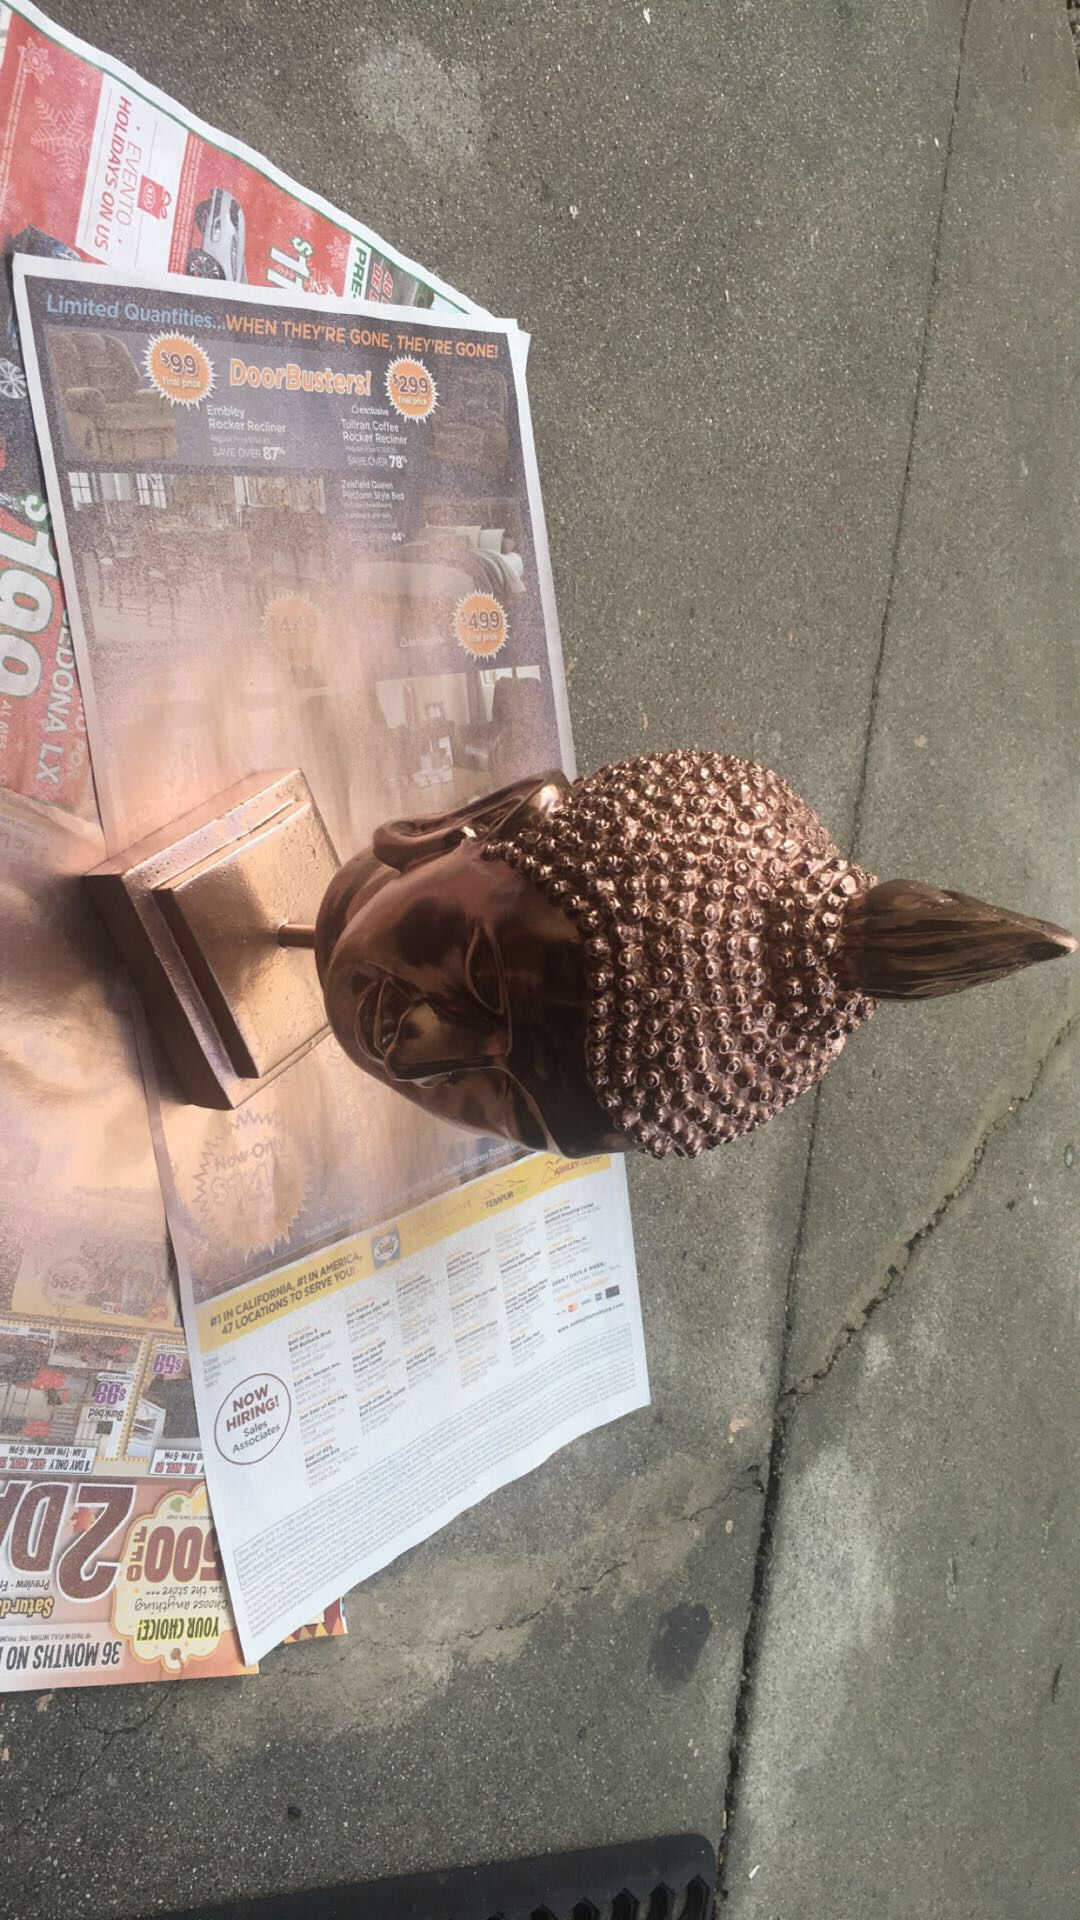 I decided to spray paint my old African head and bring it back to life.